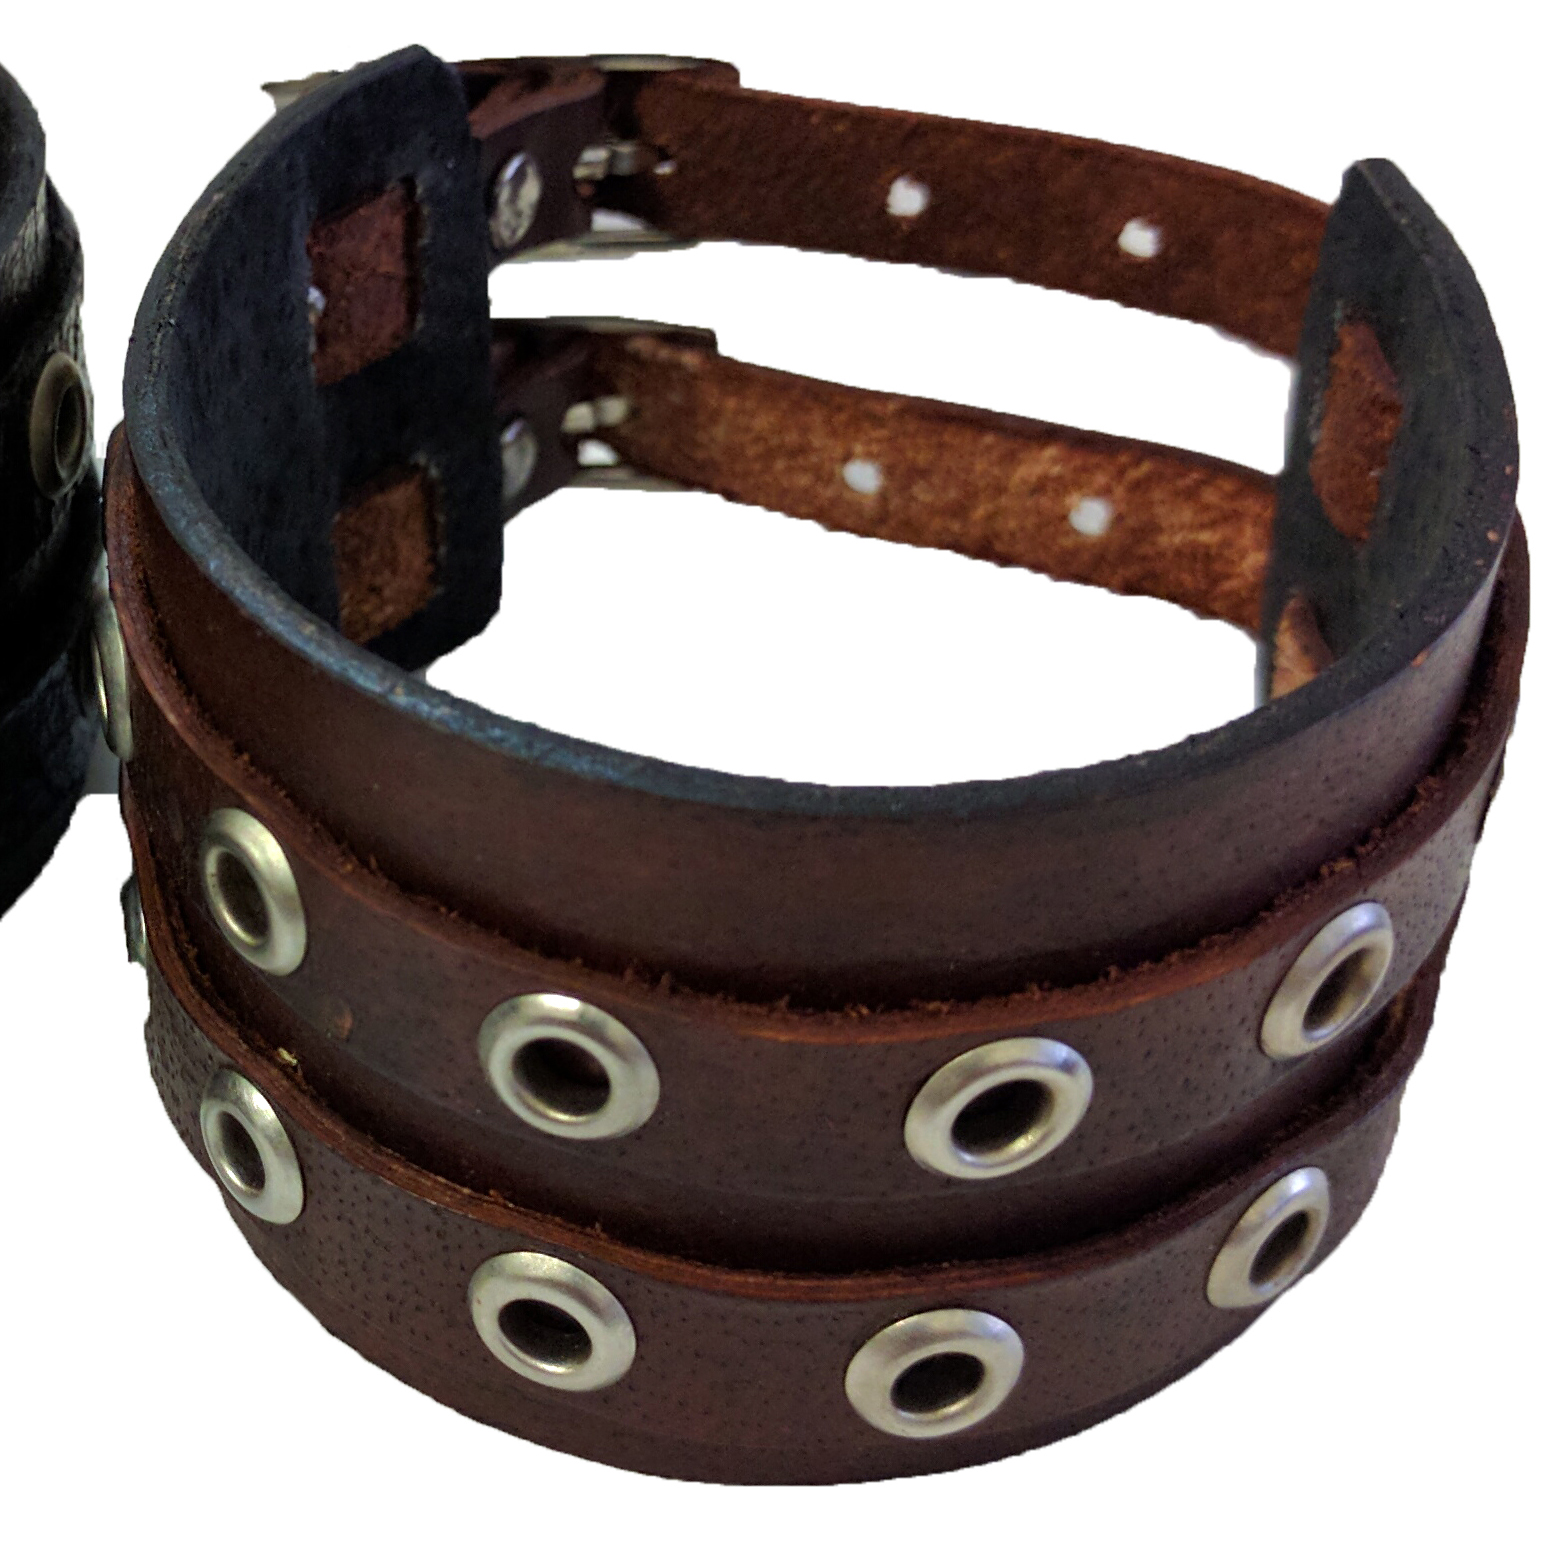 Double Rivet Strap Buckle Bracelet Cuff